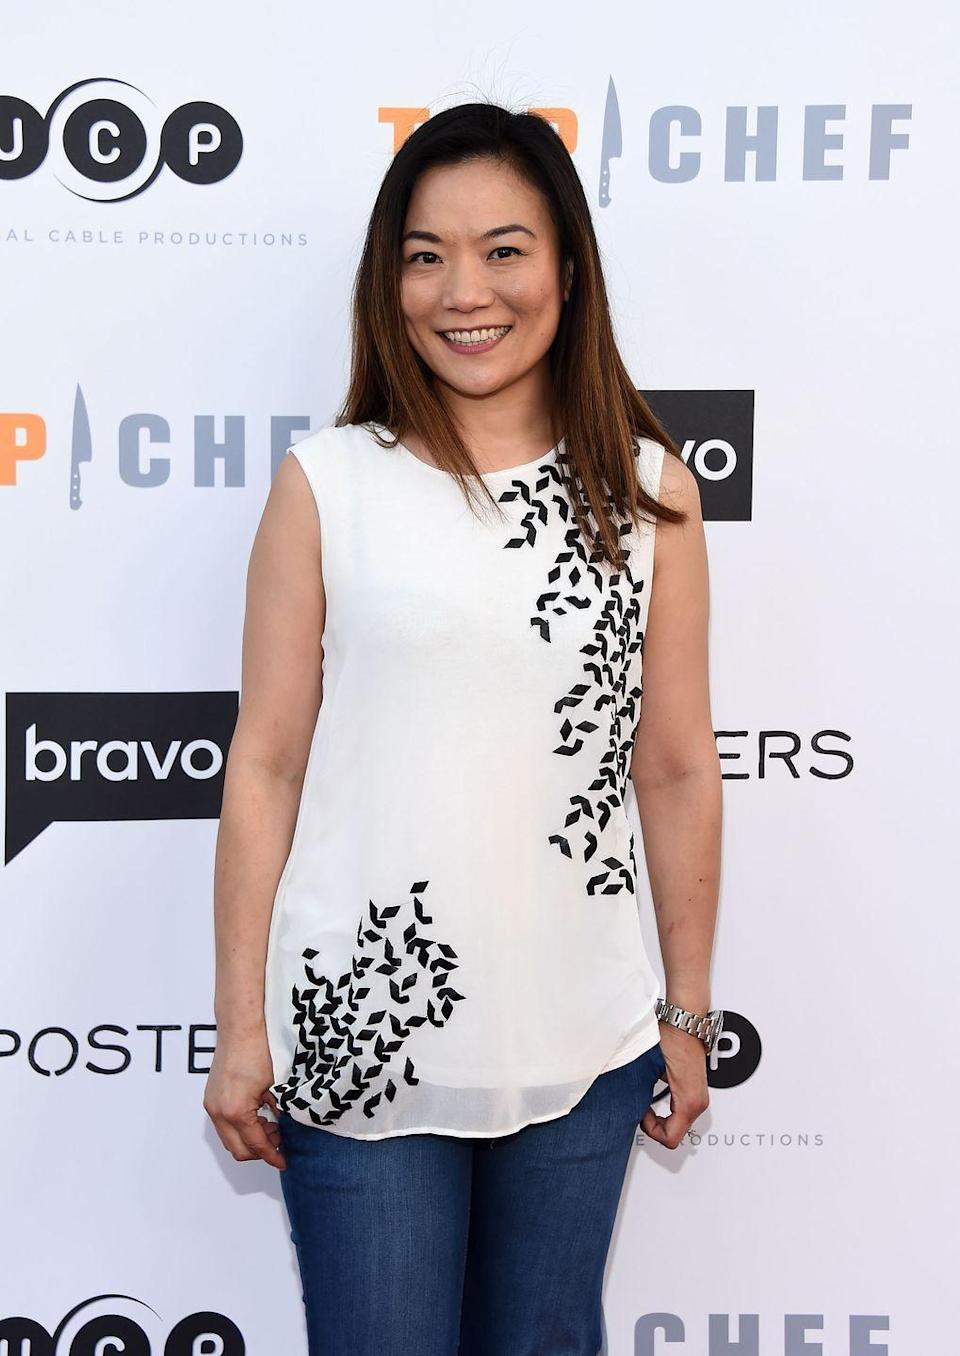 """<p>According to contestant Shirley Chung, endurance and stamina is a must. She told <a href=""""https://www.delish.com/food-news/a51804/top-chef-finale/"""" rel=""""nofollow noopener"""" target=""""_blank"""" data-ylk=""""slk:Delish"""" class=""""link rapid-noclick-resp""""><em>Delish</em></a> that getting into the gym was a huge part of prepping for the competition. </p>"""